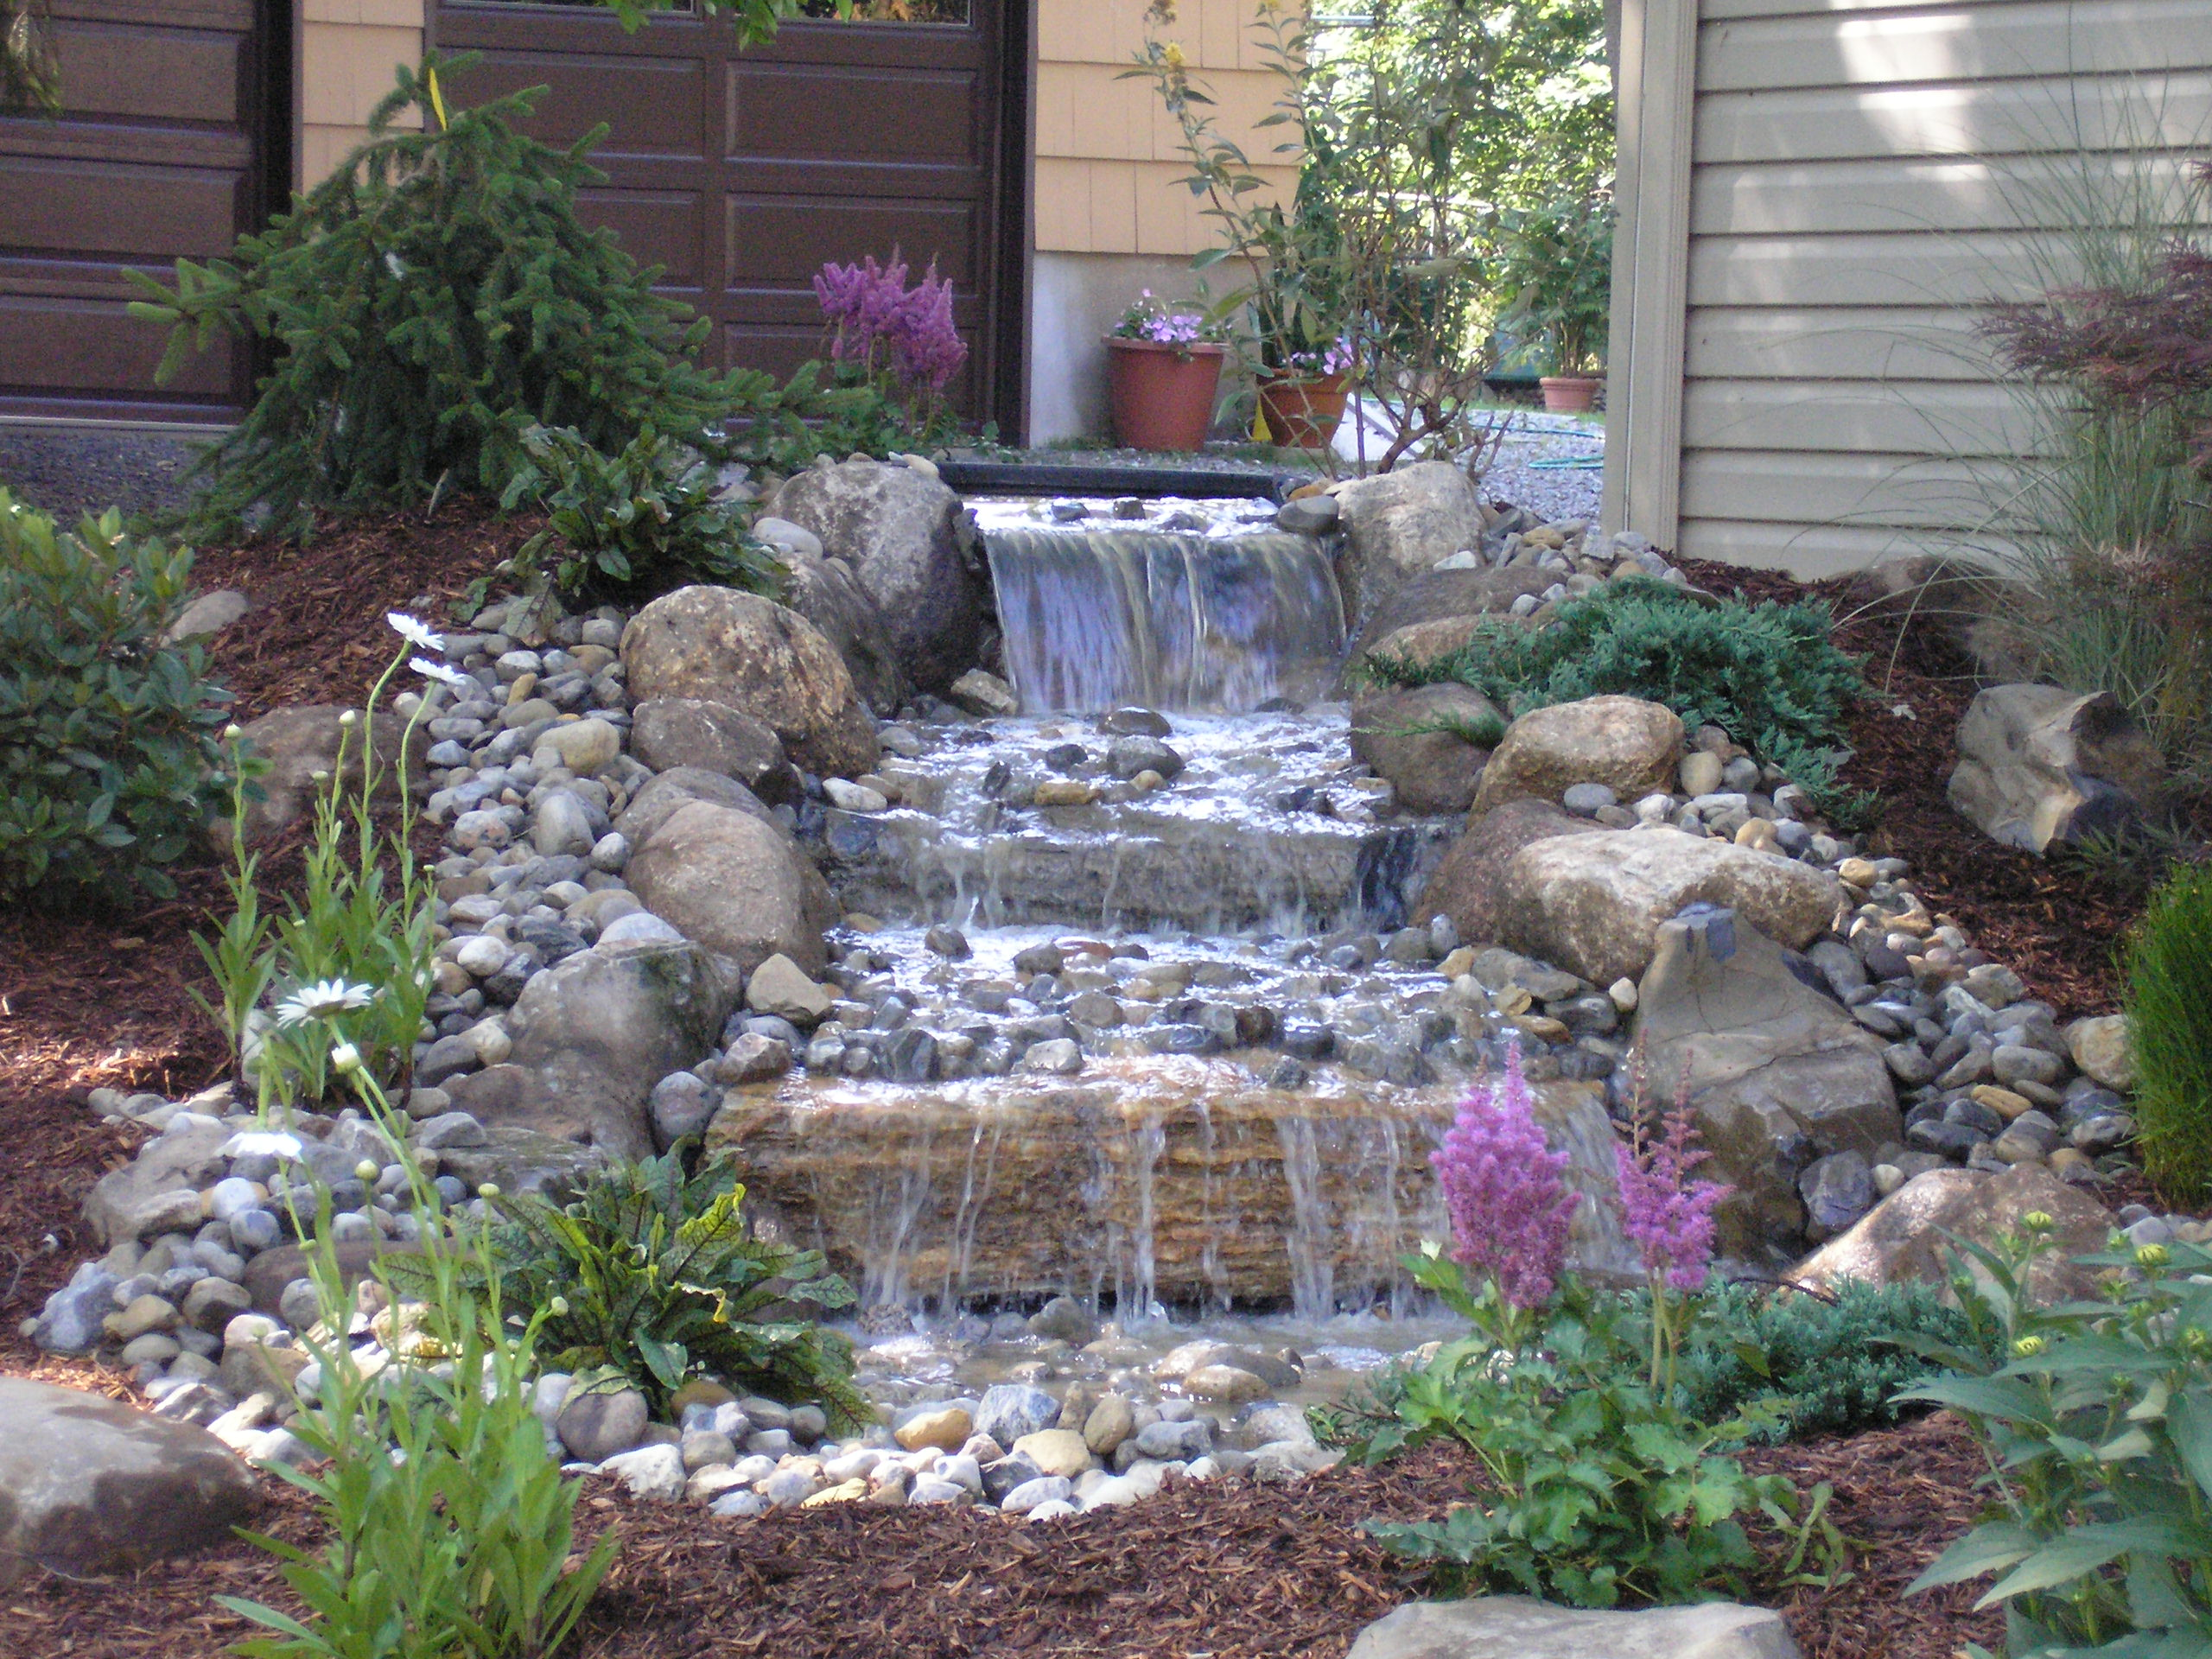 Homemade lighting ideas and water features on pinterest for Homemade pond ideas